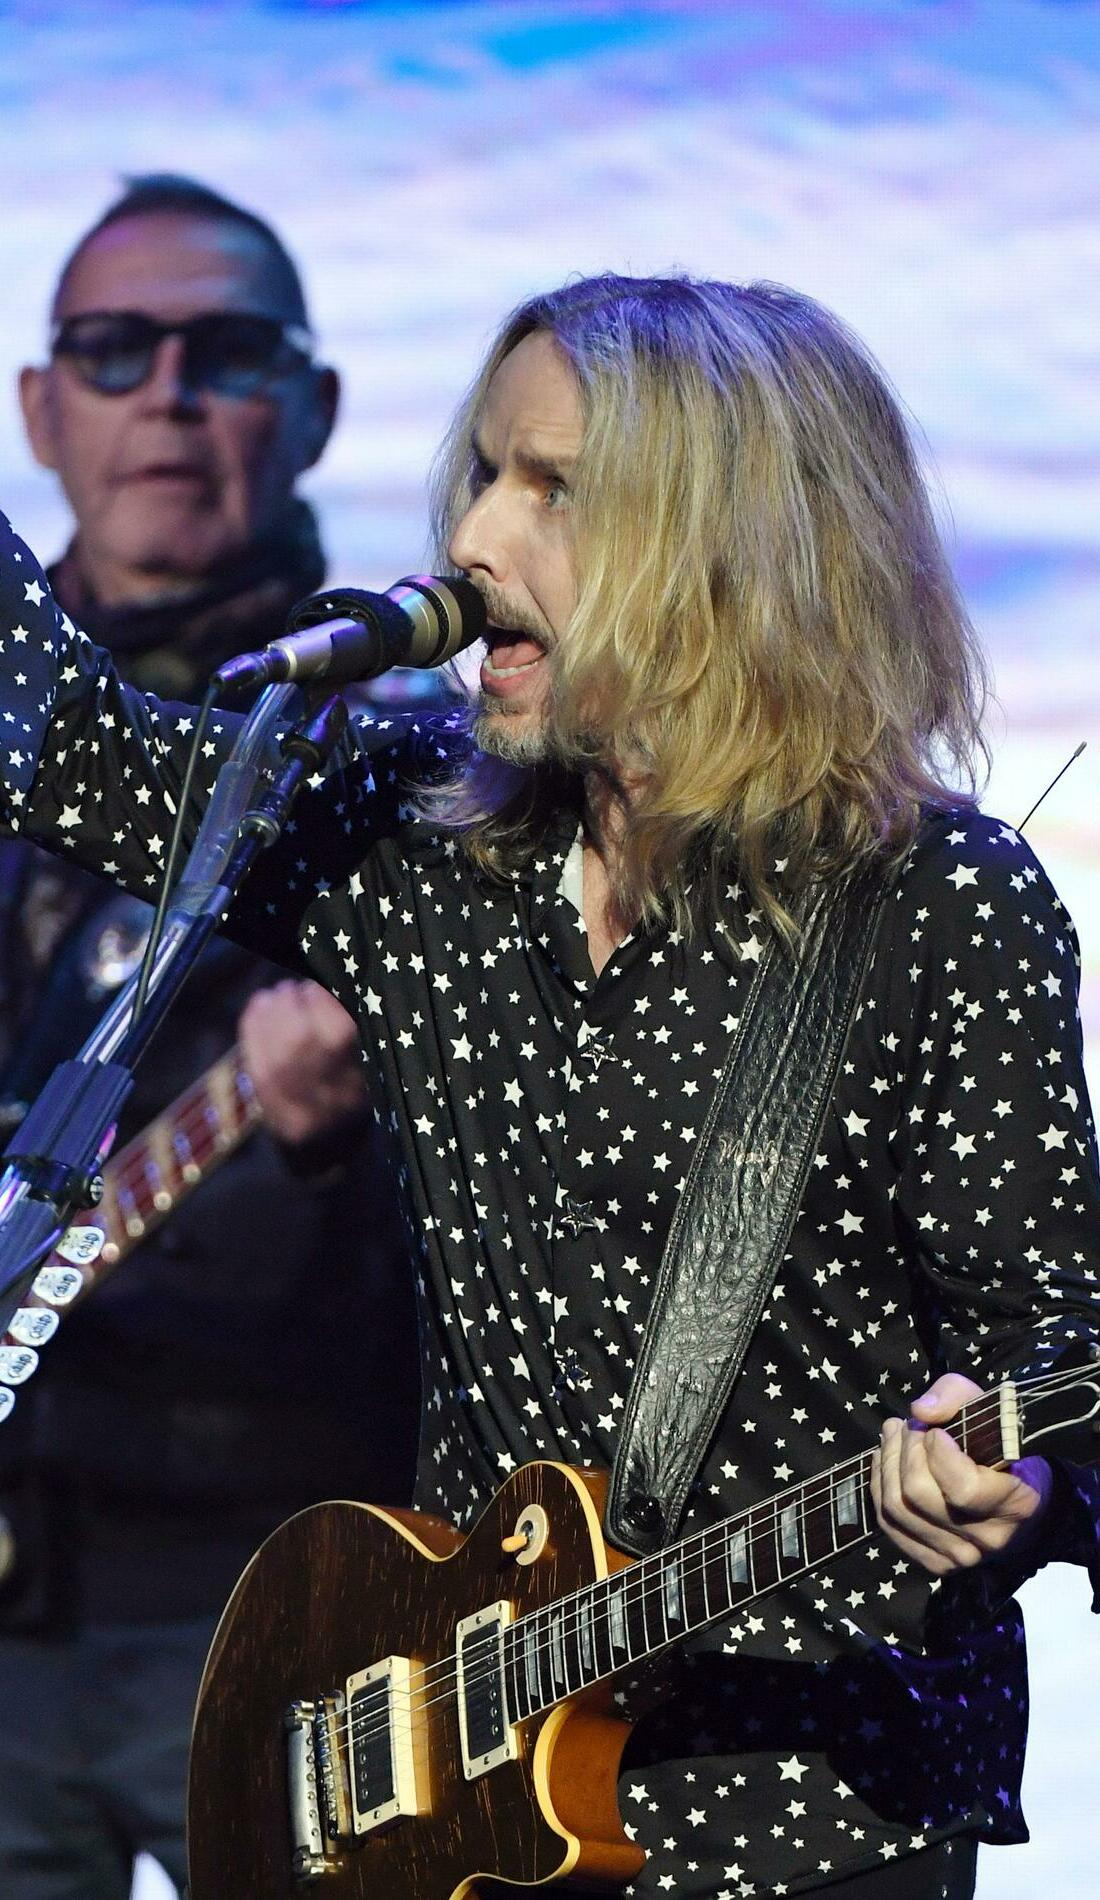 A Styx live event